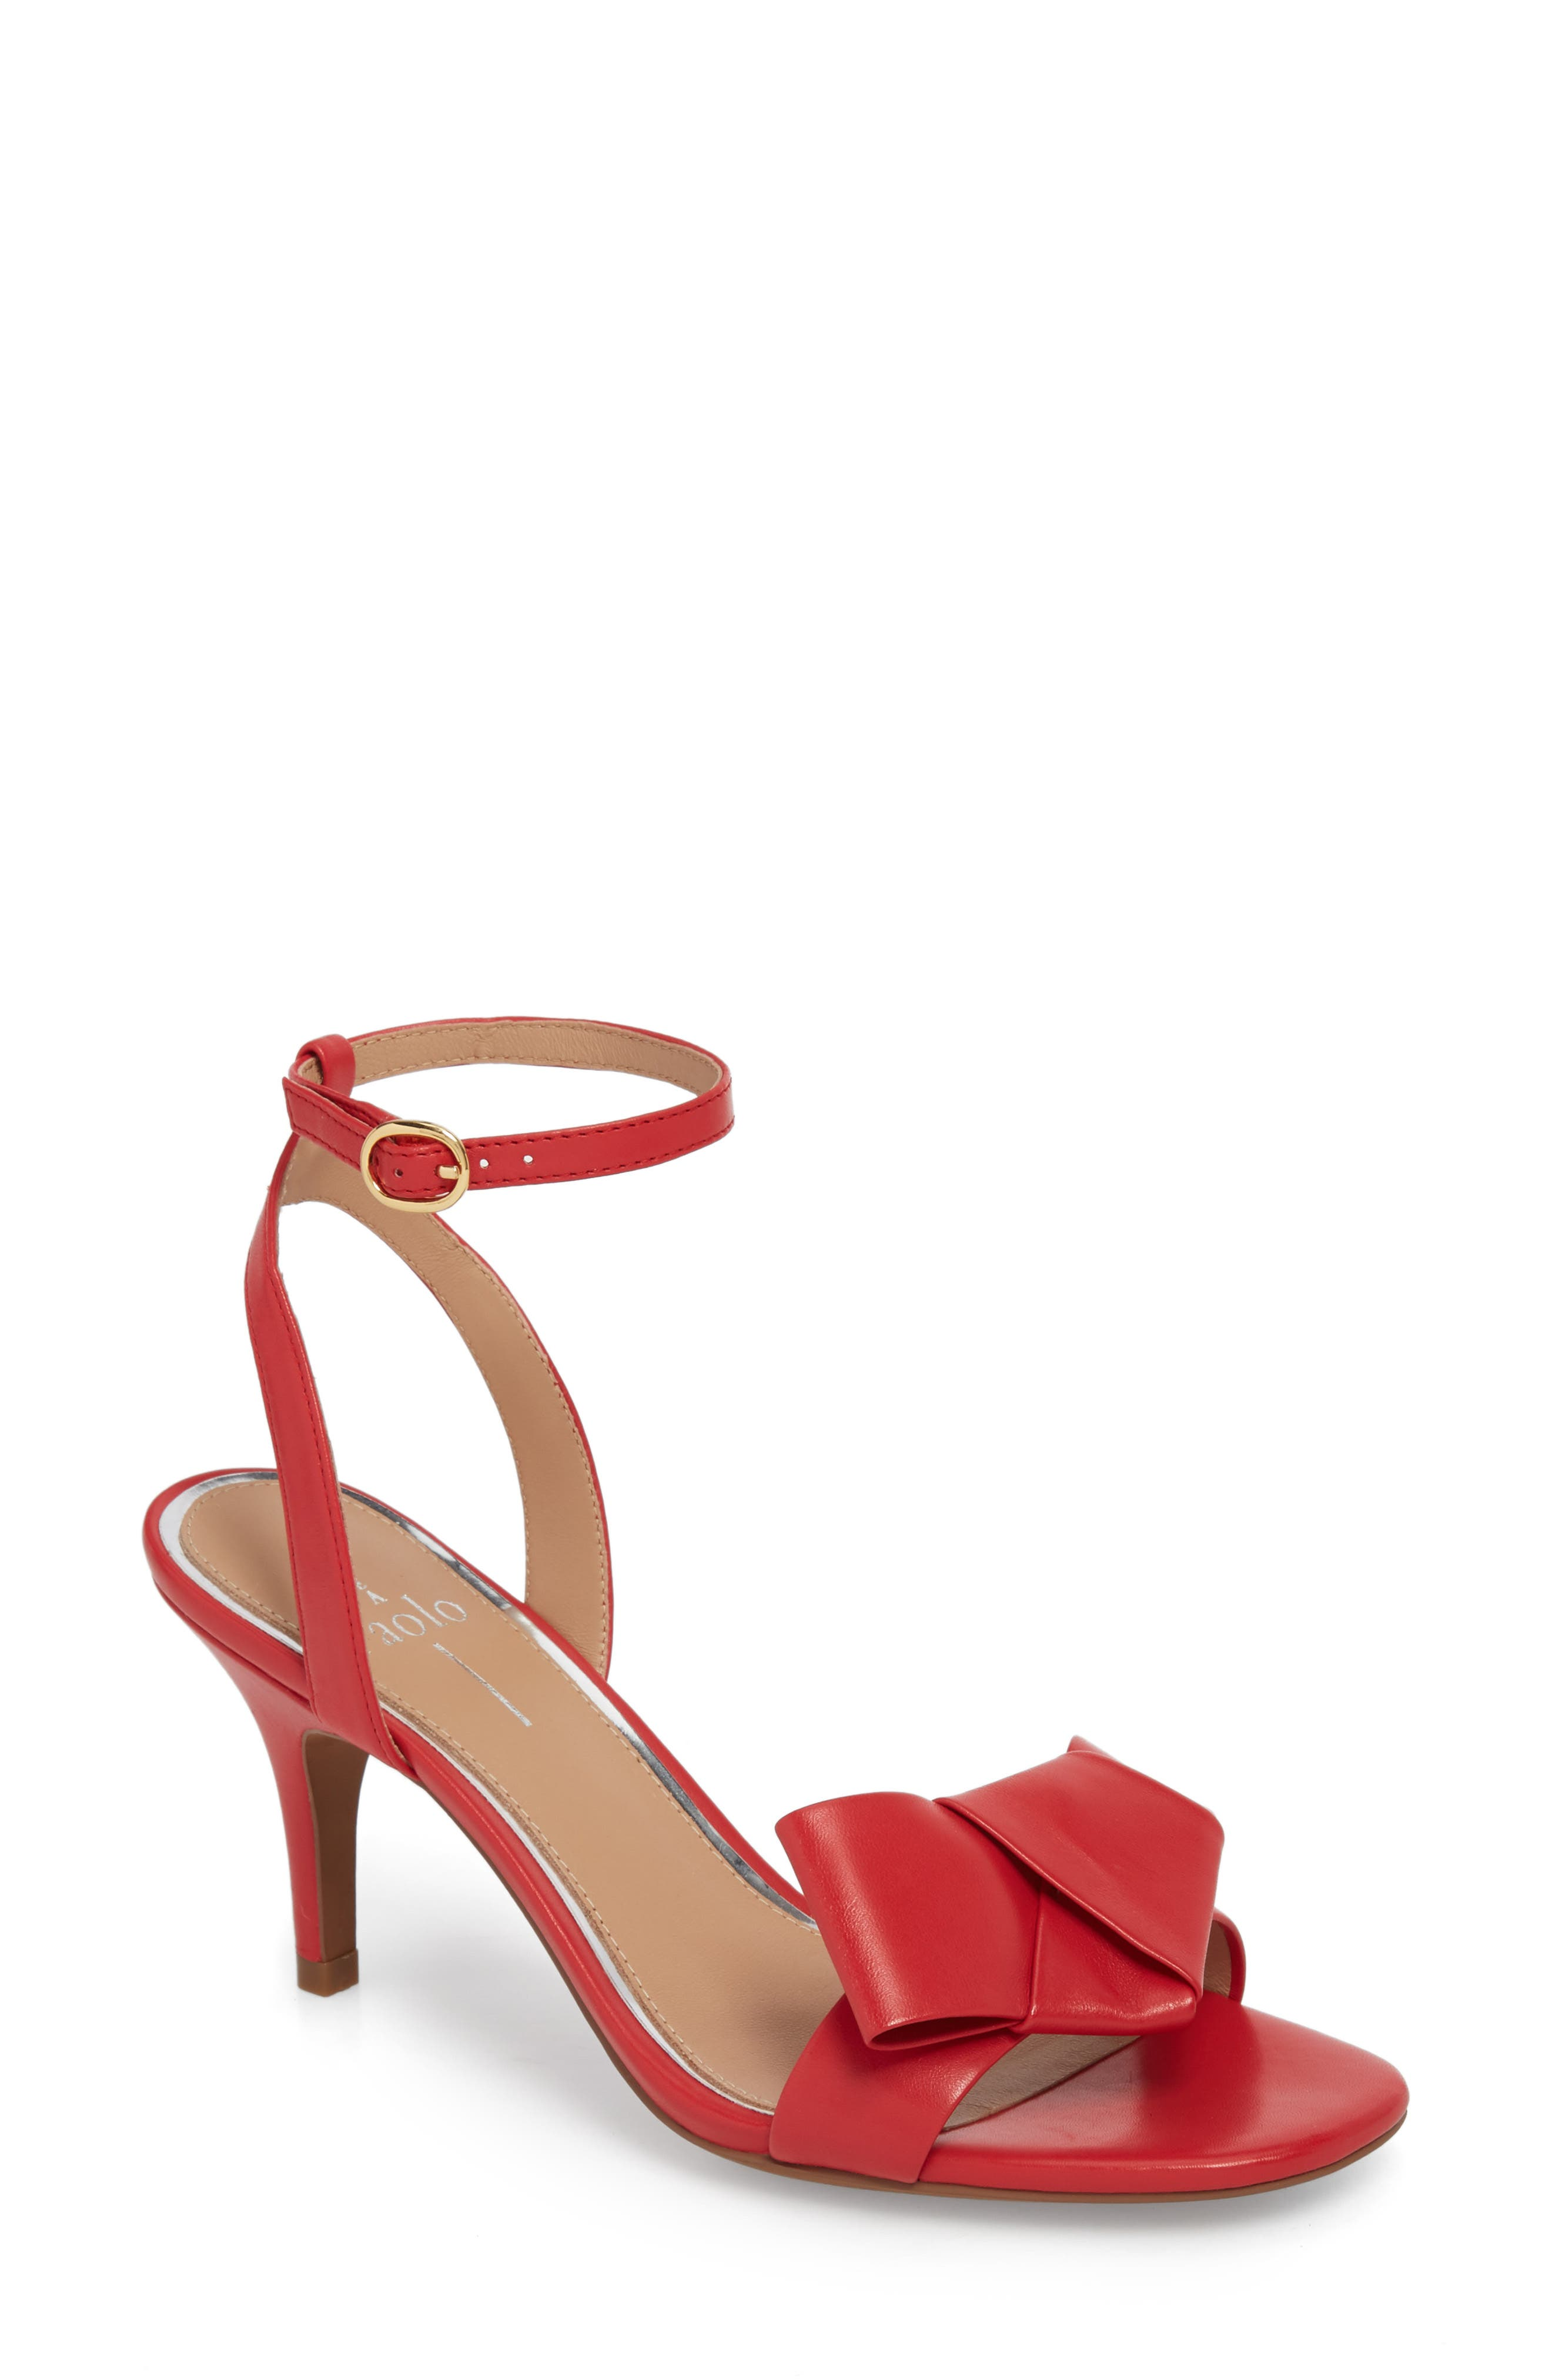 Haven Ankle Strap Sandal,                             Main thumbnail 1, color,                             Red Leather